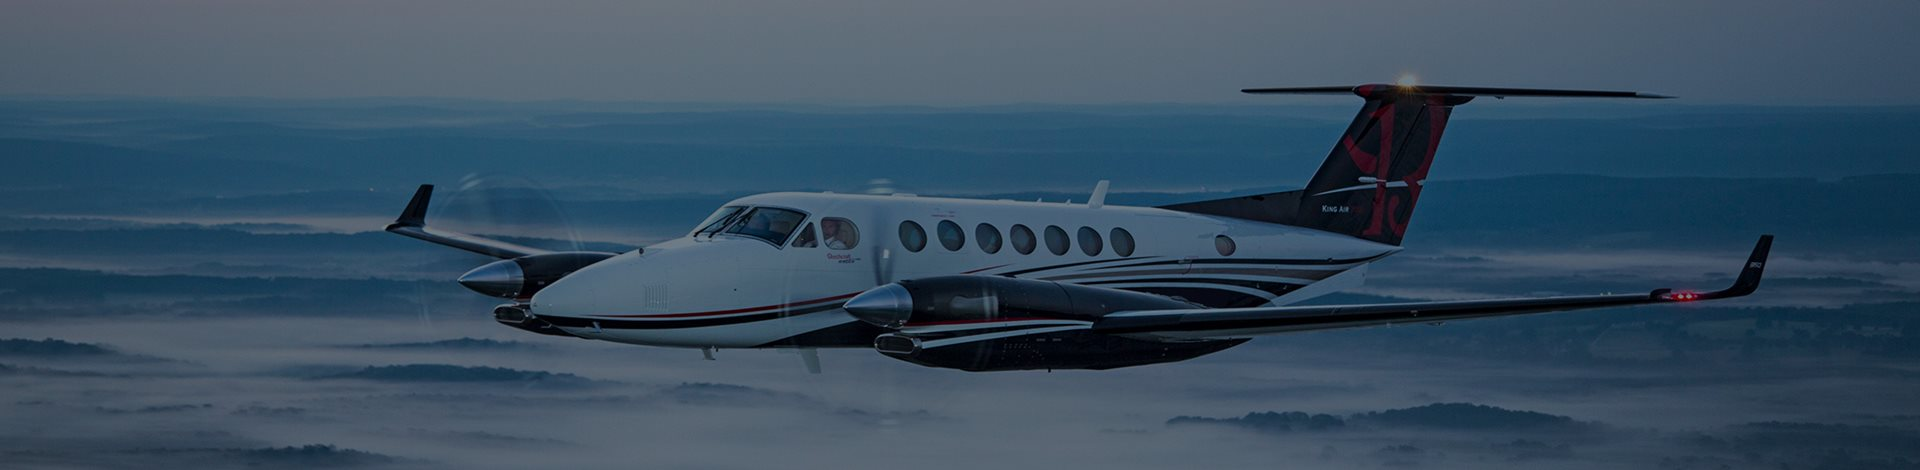 Inflight Wi-Fi for King Air